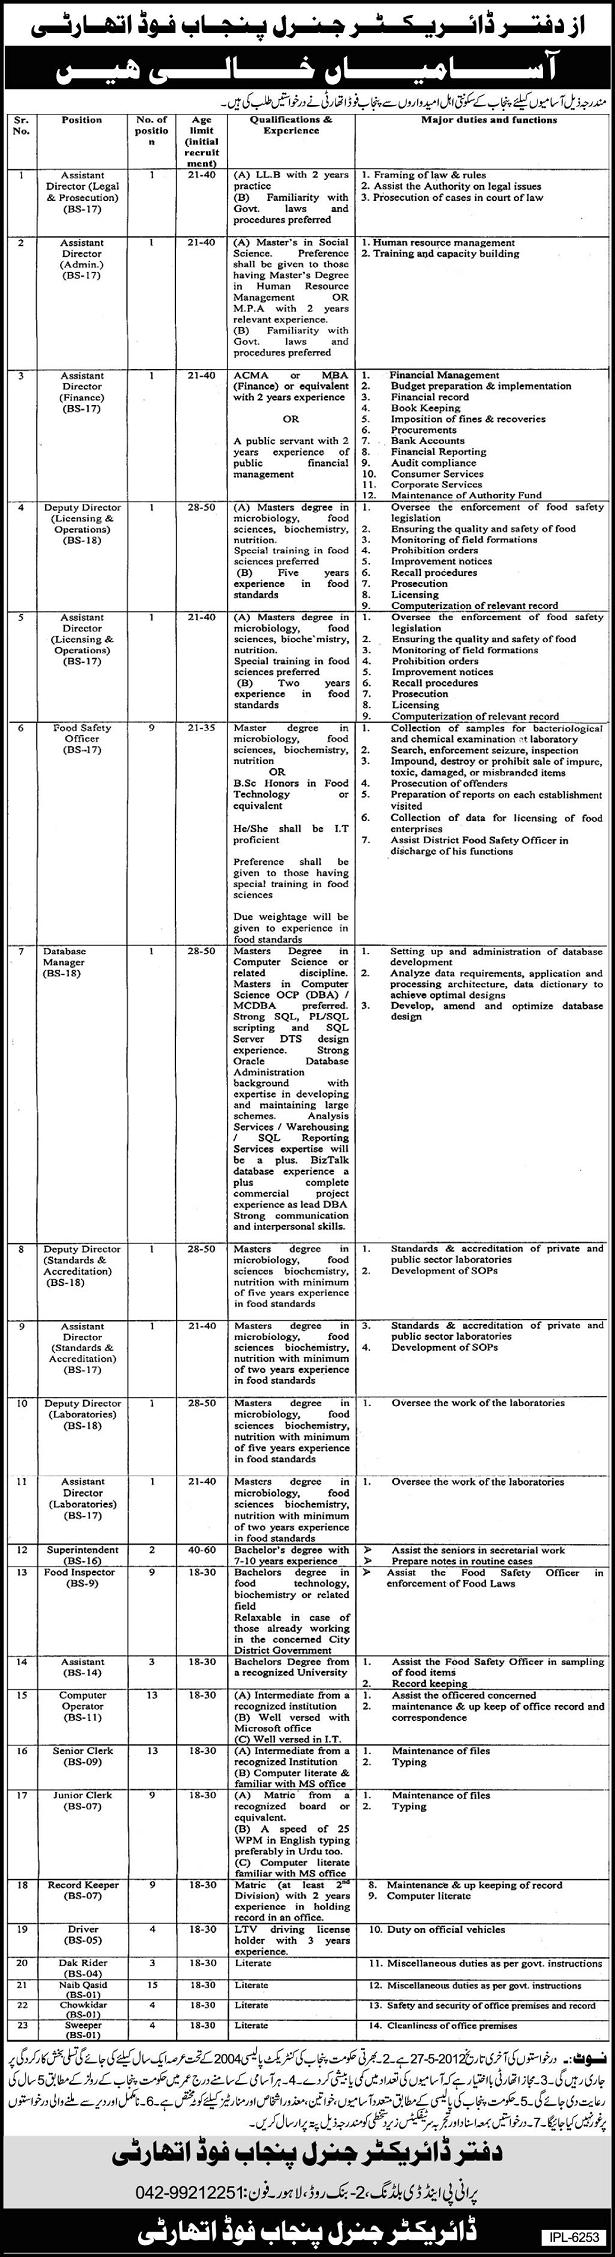 Jobs in Punjab Food Authority – Last Date to Apply 27-5-2012